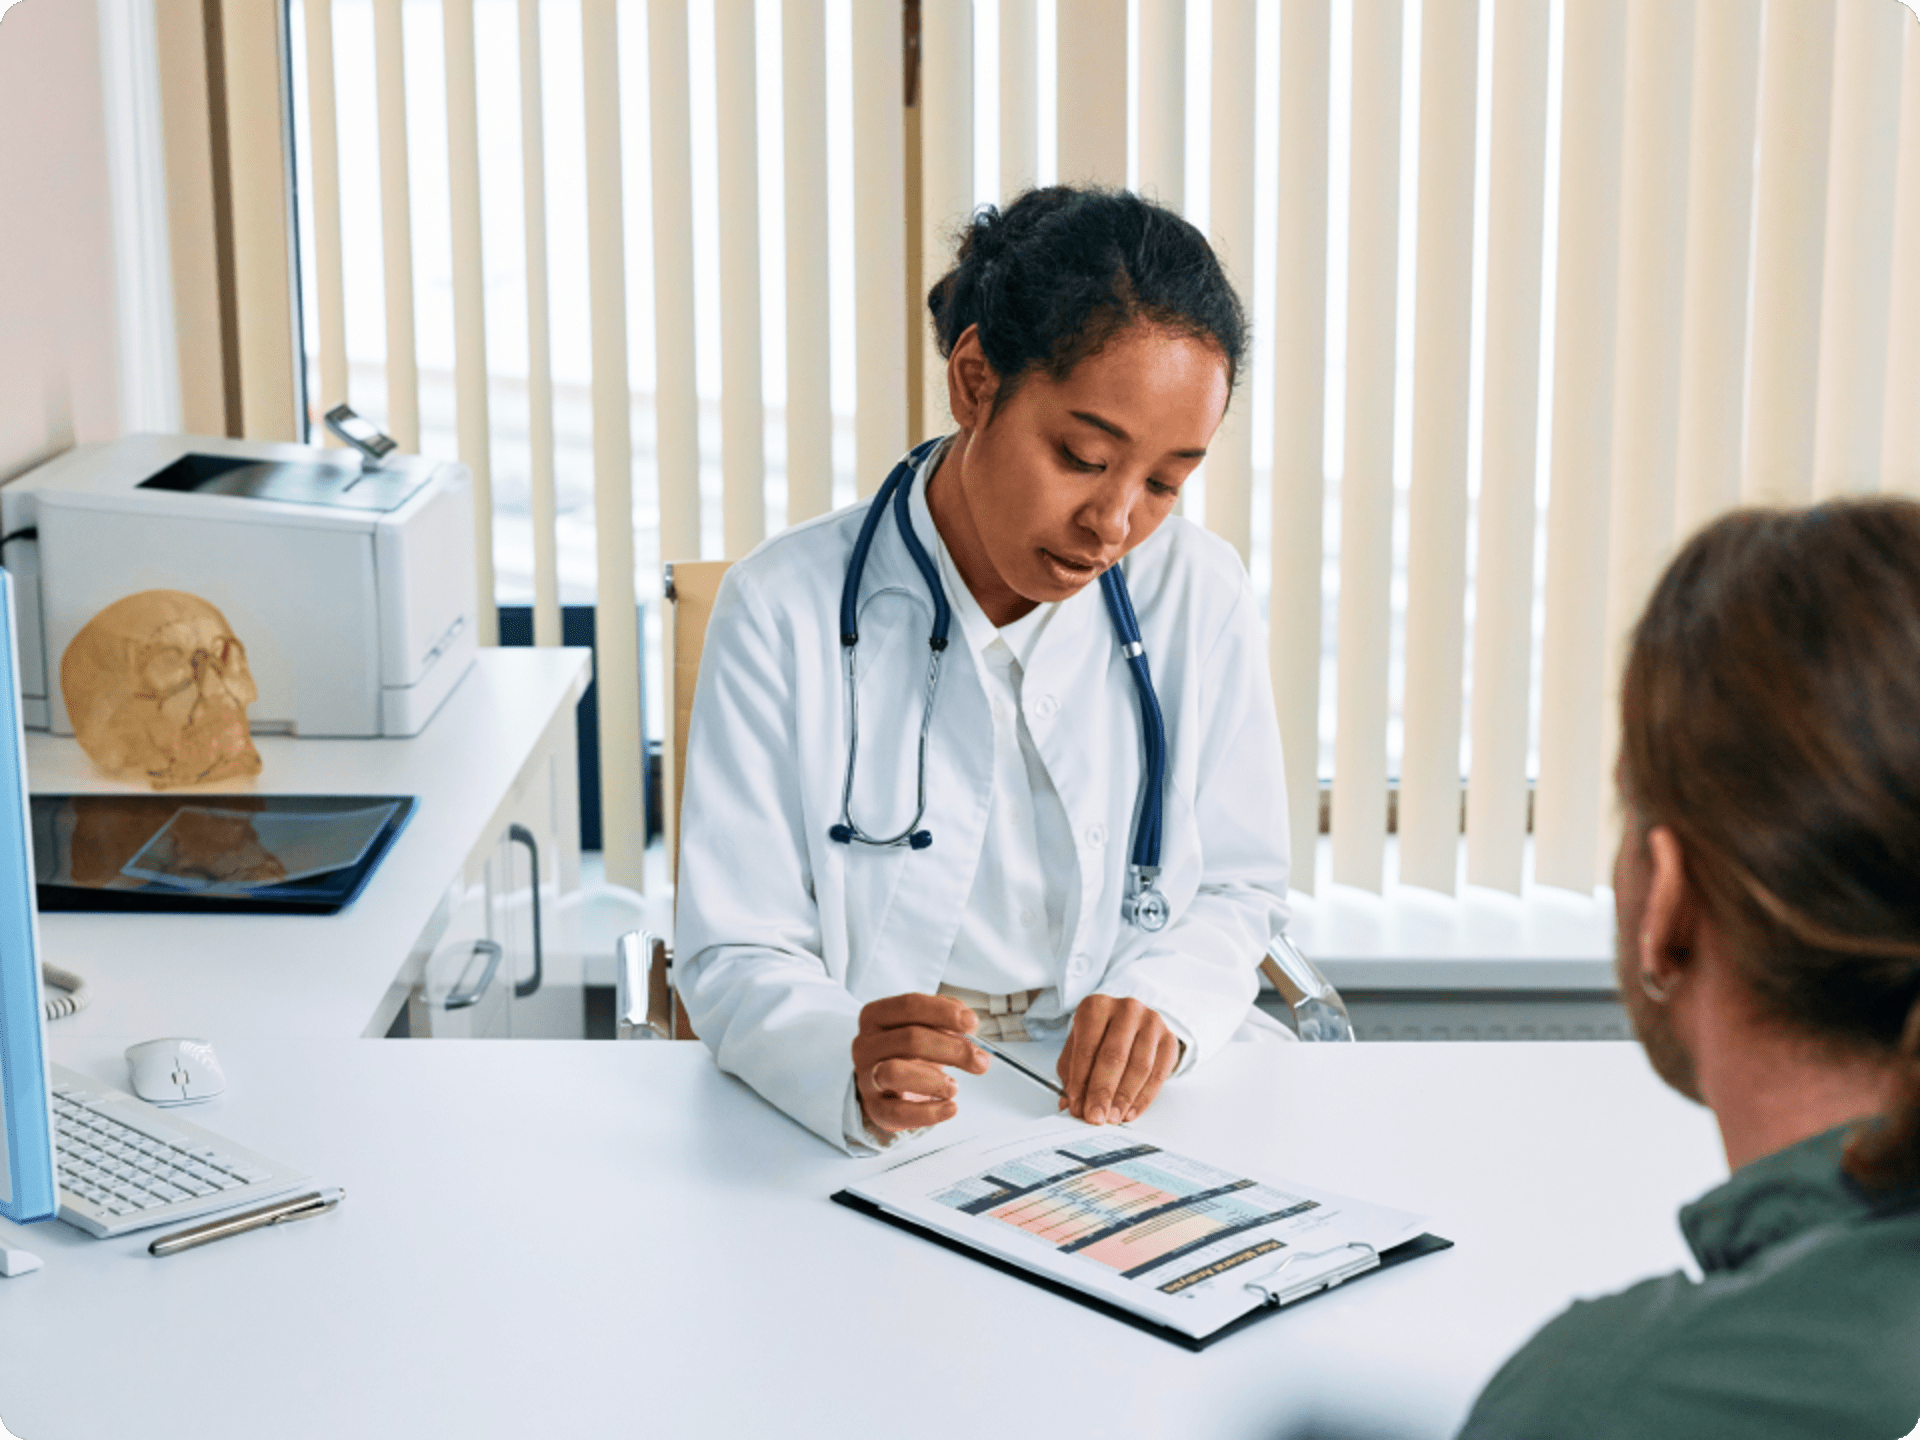 Doctor consultation with patient